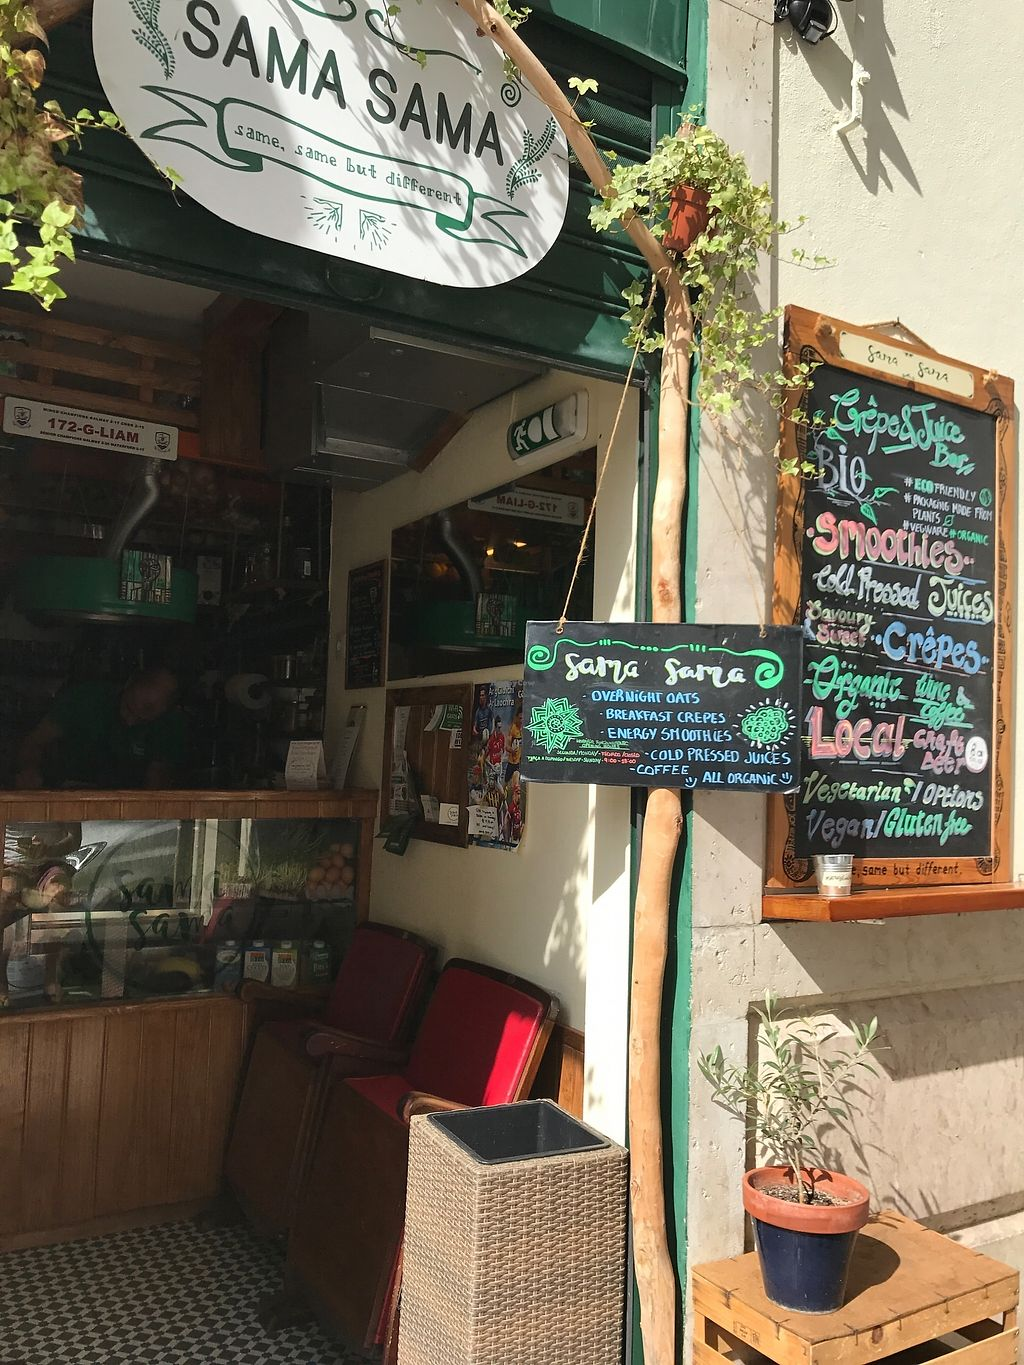 """Photo of Sama Sama - Crepe and Juice Bar  by <a href=""""/members/profile/TineH"""">TineH</a> <br/>Cute exterior  <br/> September 25, 2017  - <a href='/contact/abuse/image/93689/308474'>Report</a>"""